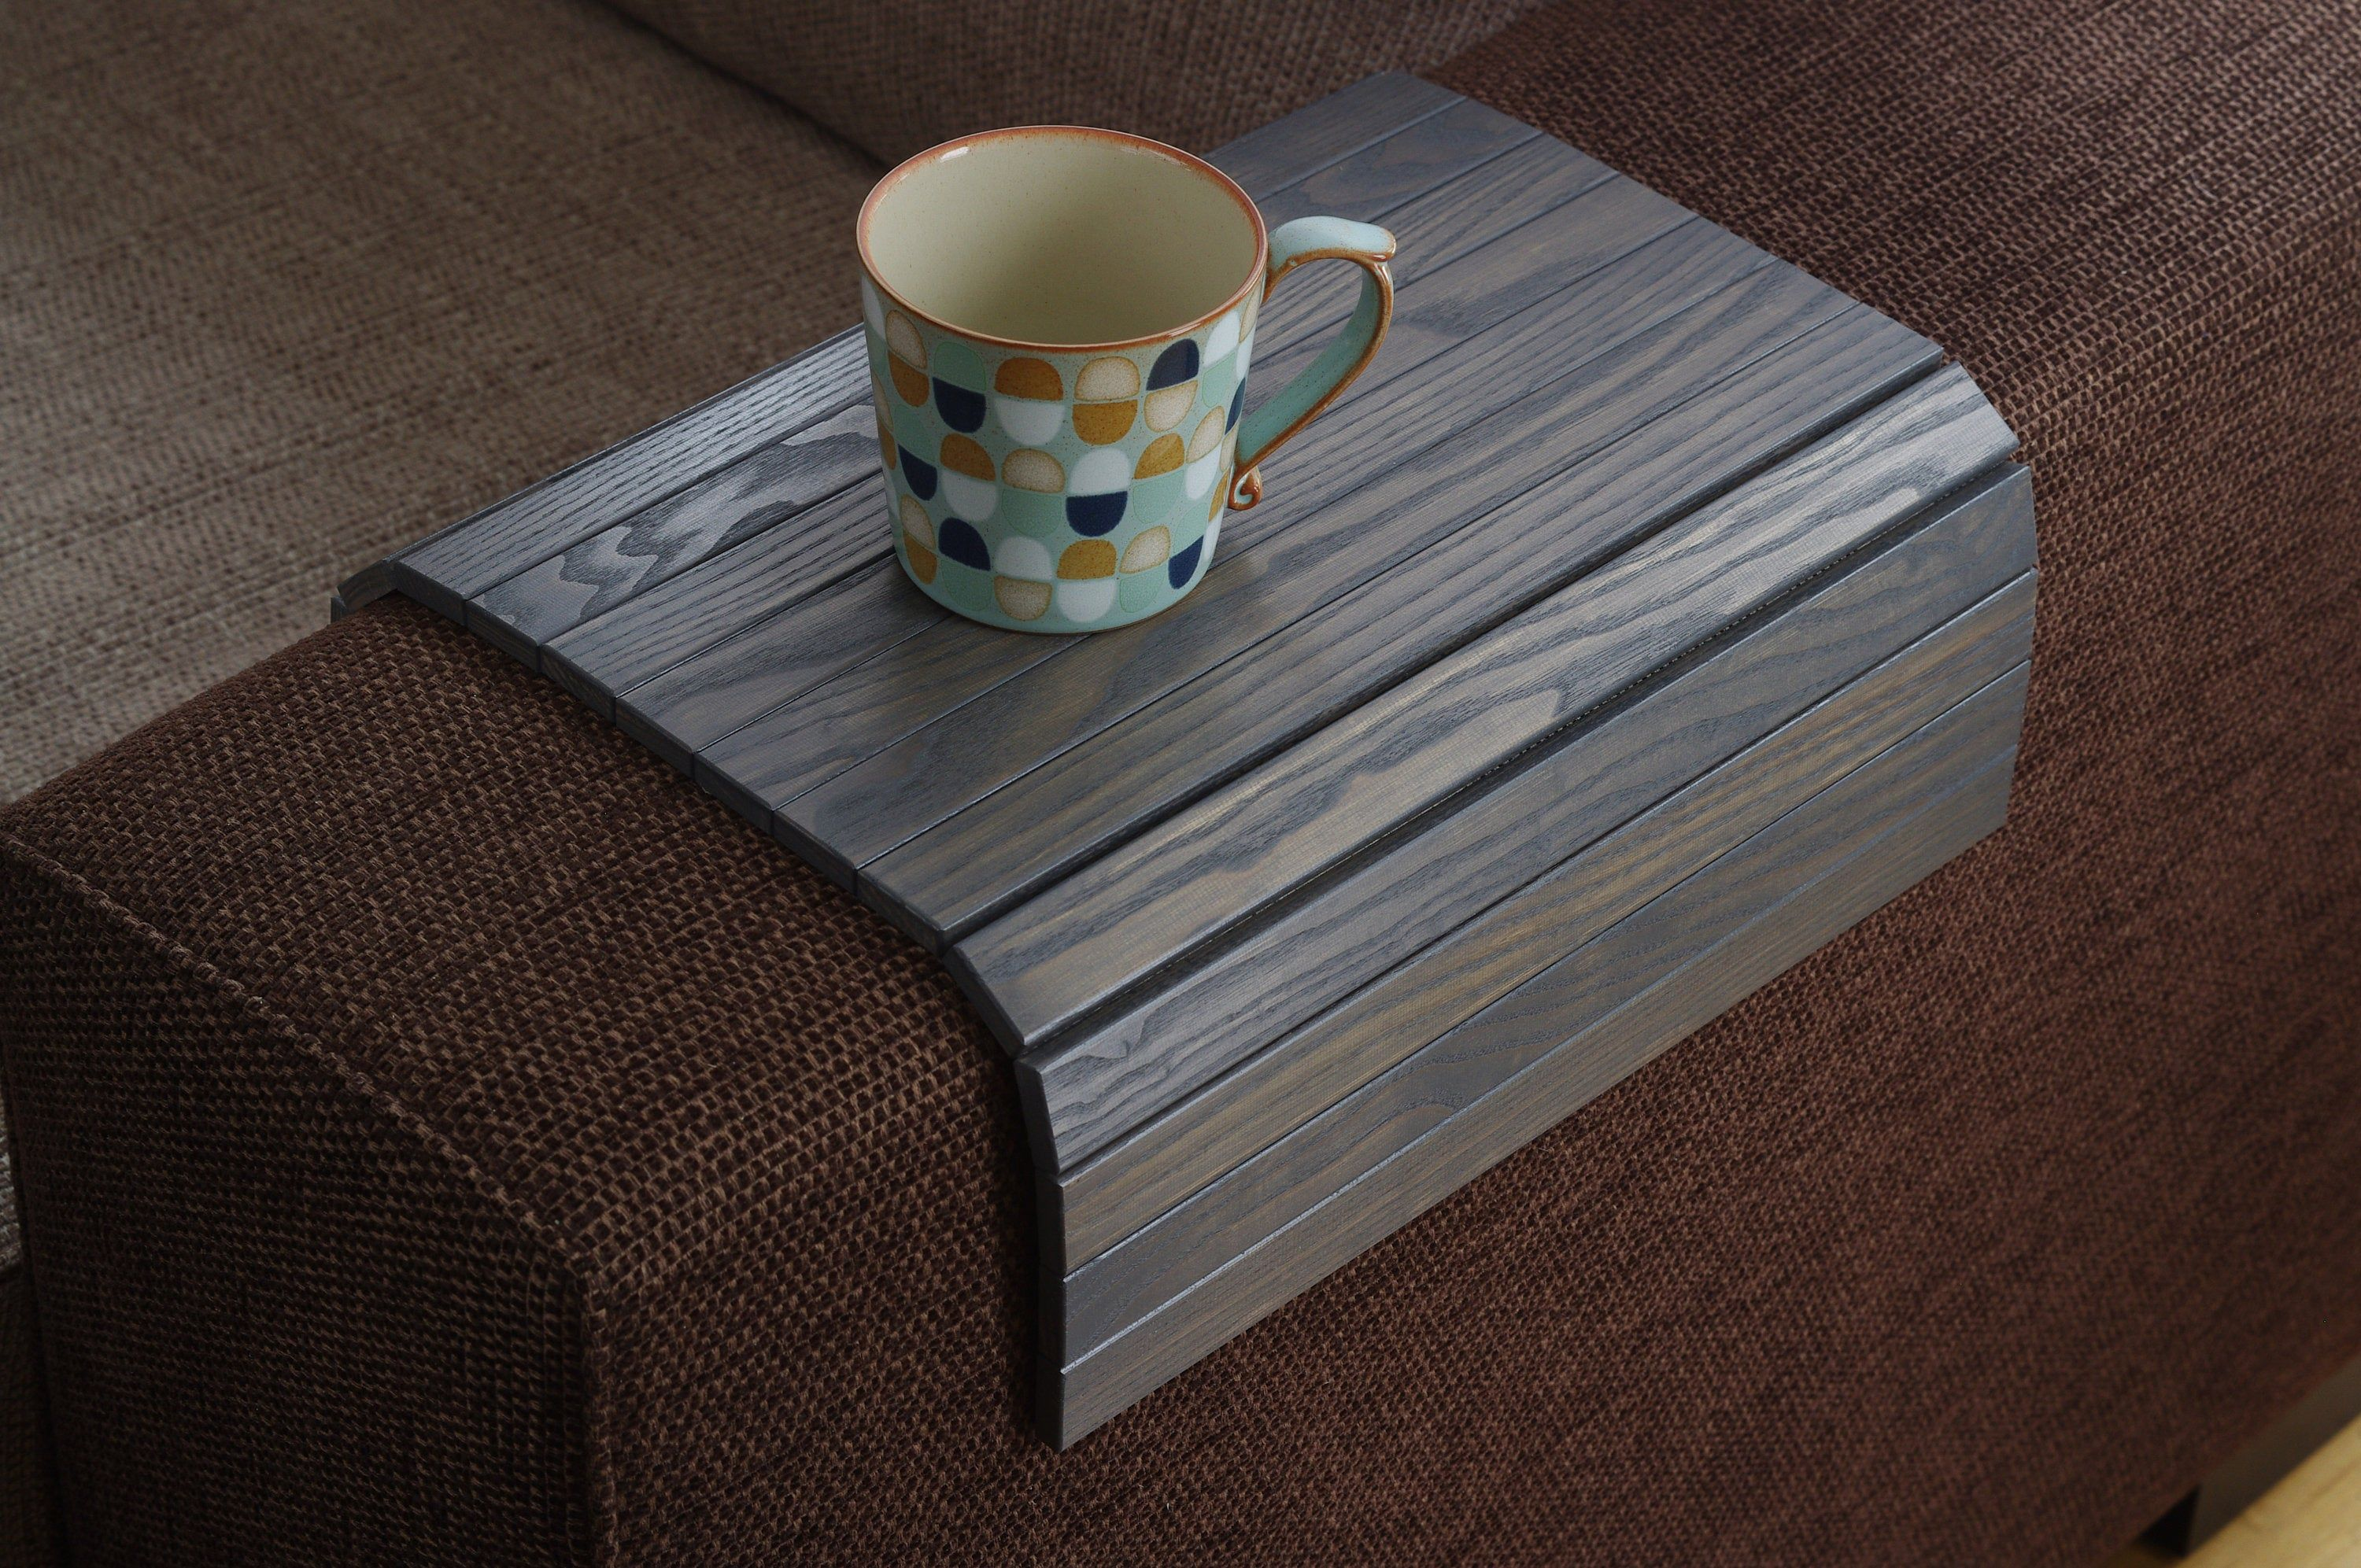 Sofa Tray Table Grey Armrest Tray Sofa Arm Tray Unique Etsy In 2020 Wooden Coffee Table Wood End Tables Coffee Table Tray